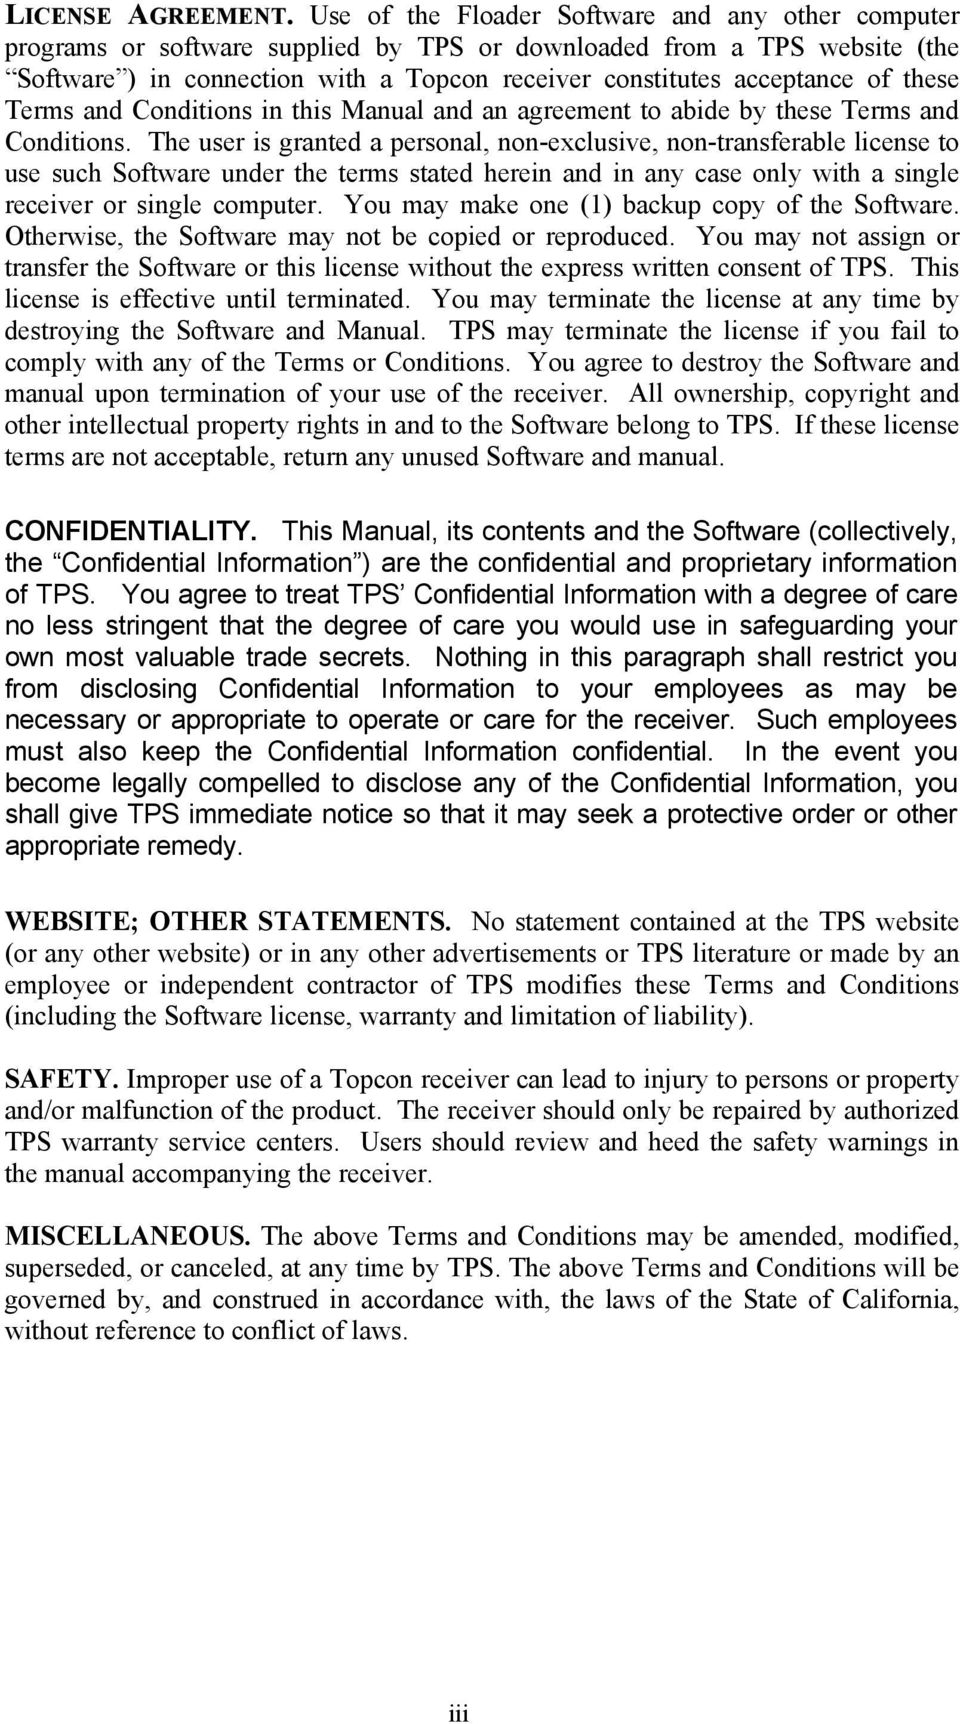 these Terms and Conditions in this Manual and an agreement to abide by these Terms and Conditions.